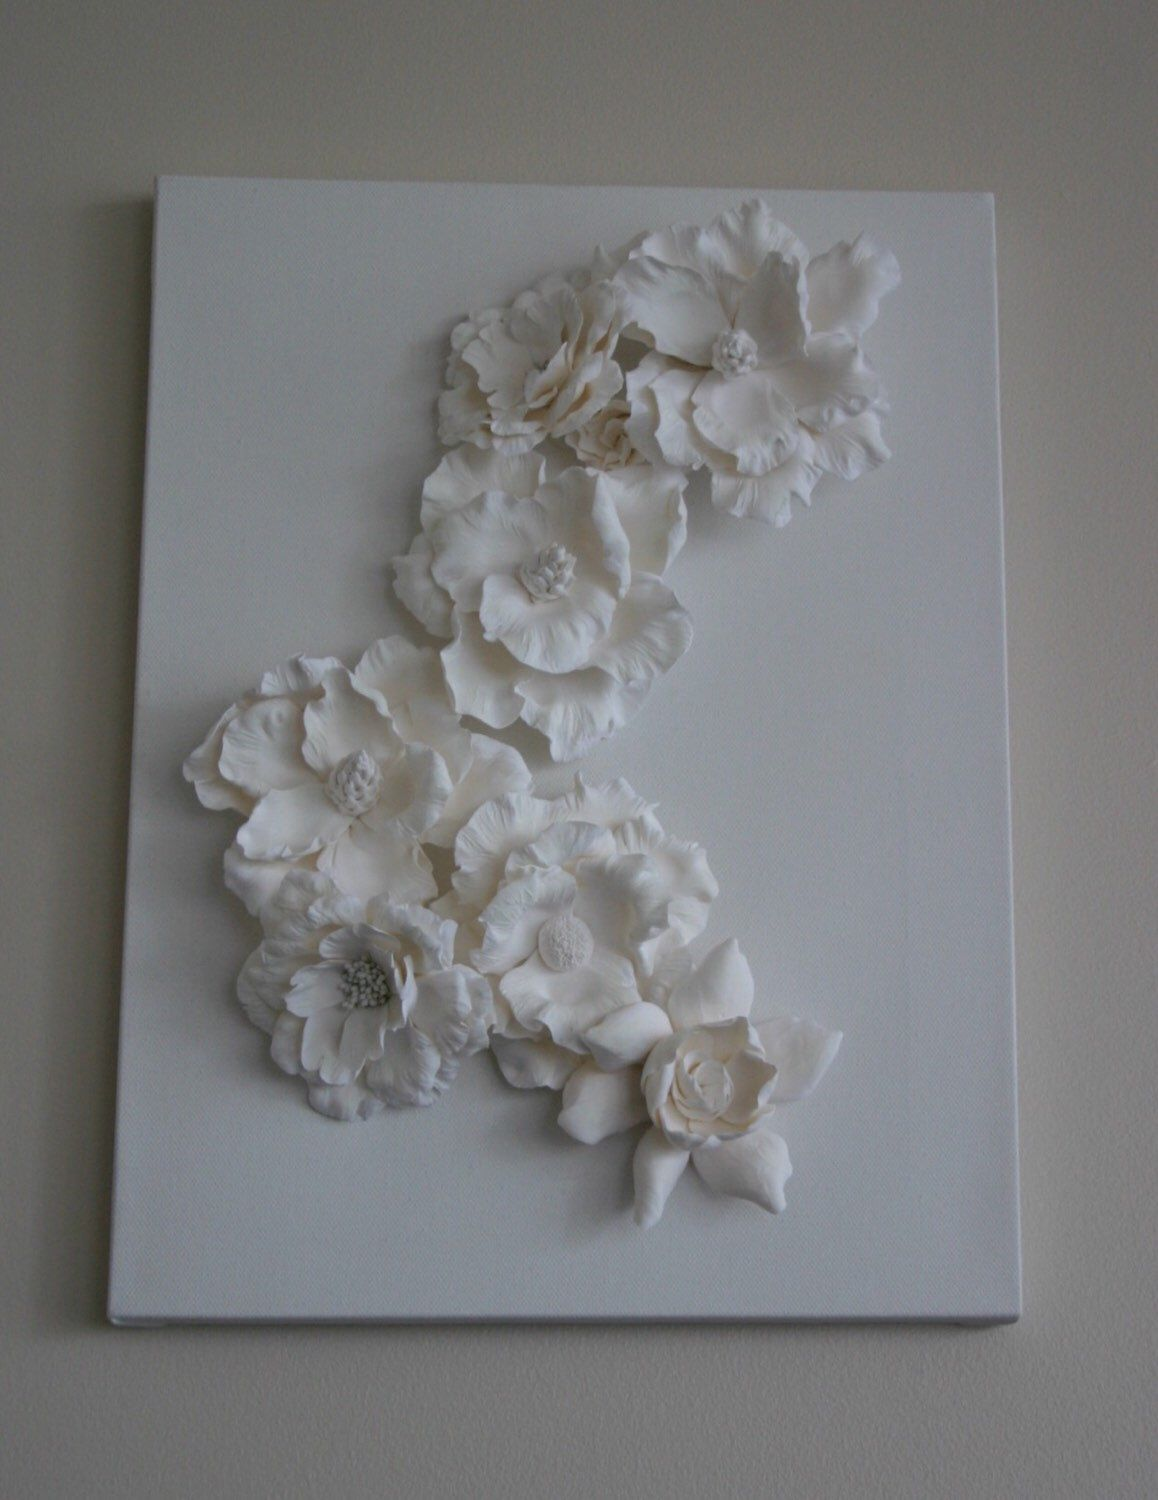 Canvas Art Work Clay Sculpture 3d Painting Wall Decoration White